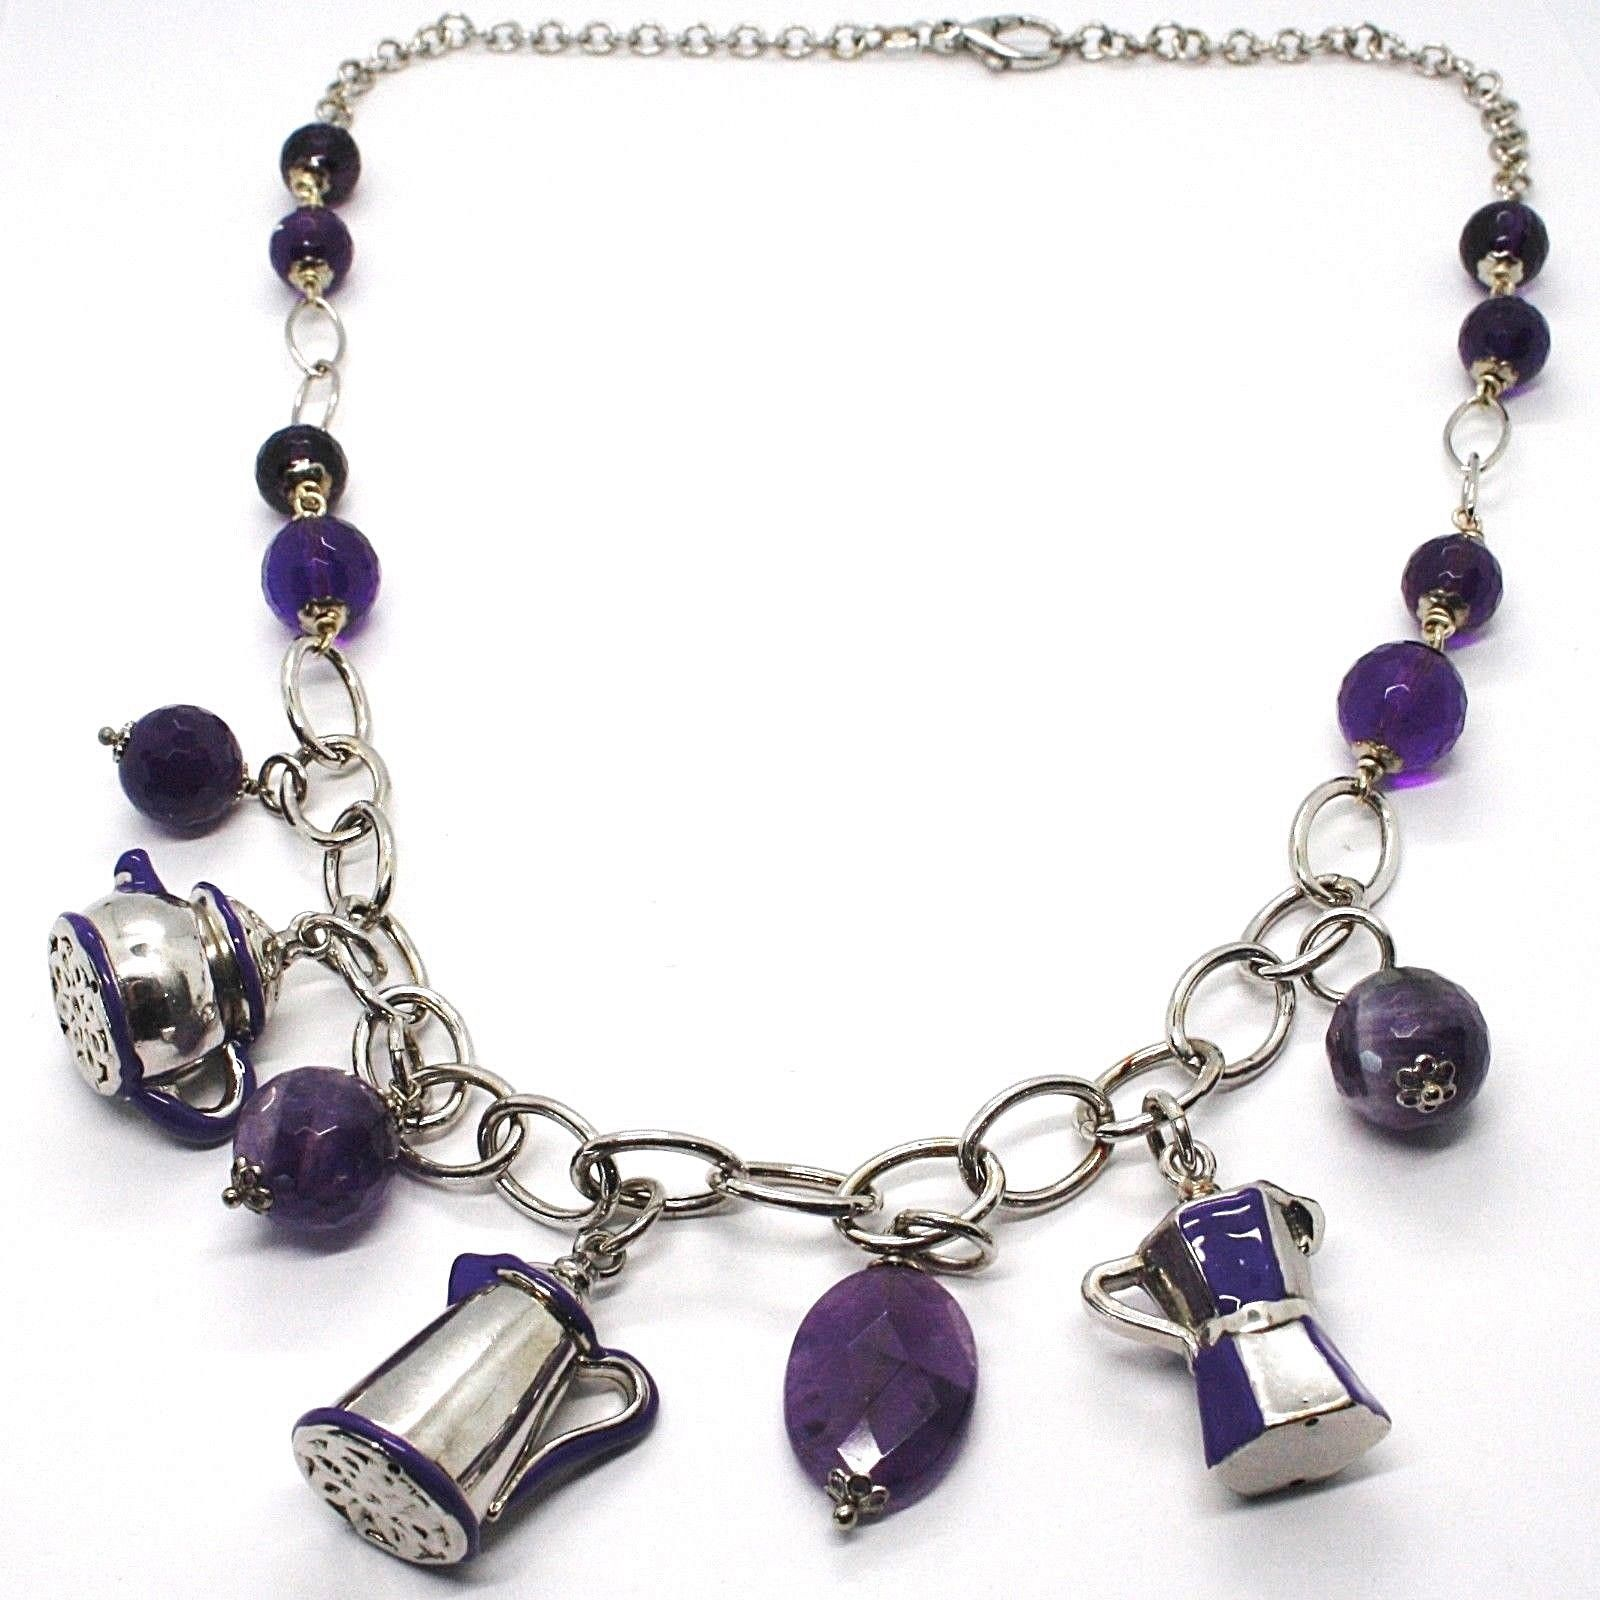 925 Silver Necklace, Amethyst, Mocha, Coffee Maker, Teapot, Pendants tiles